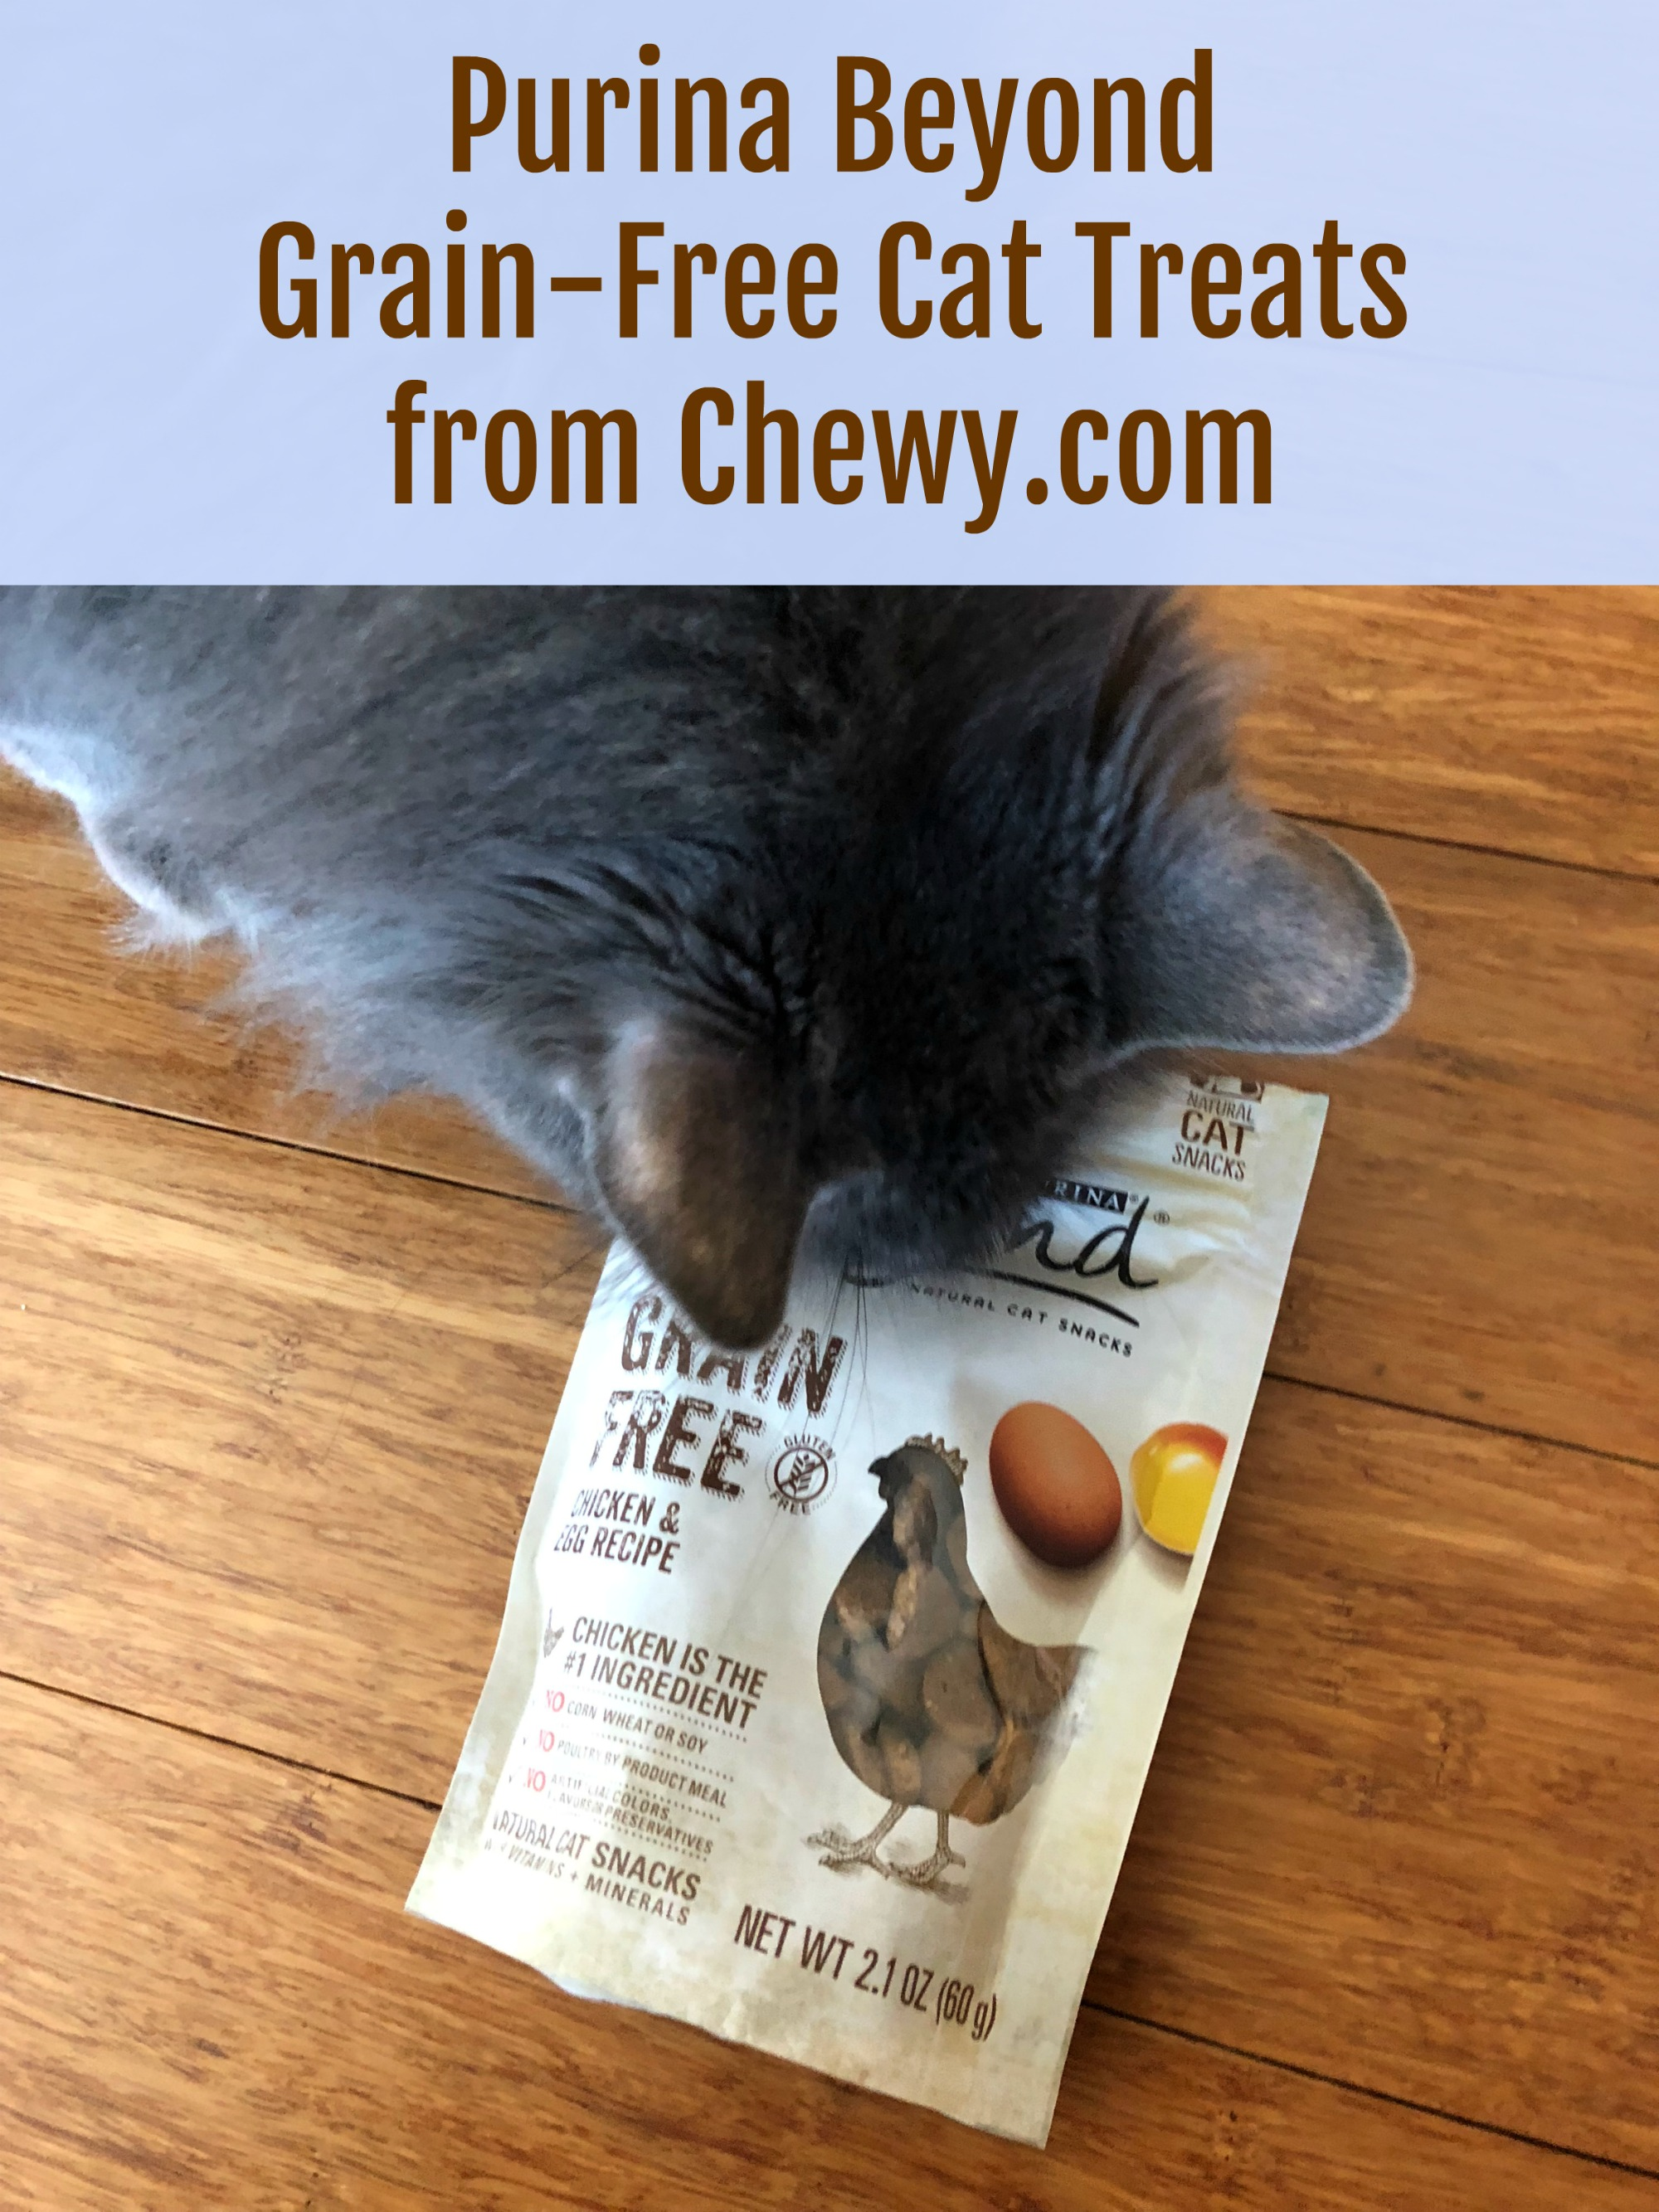 Purina Beyond Cat Treats Chewy.com